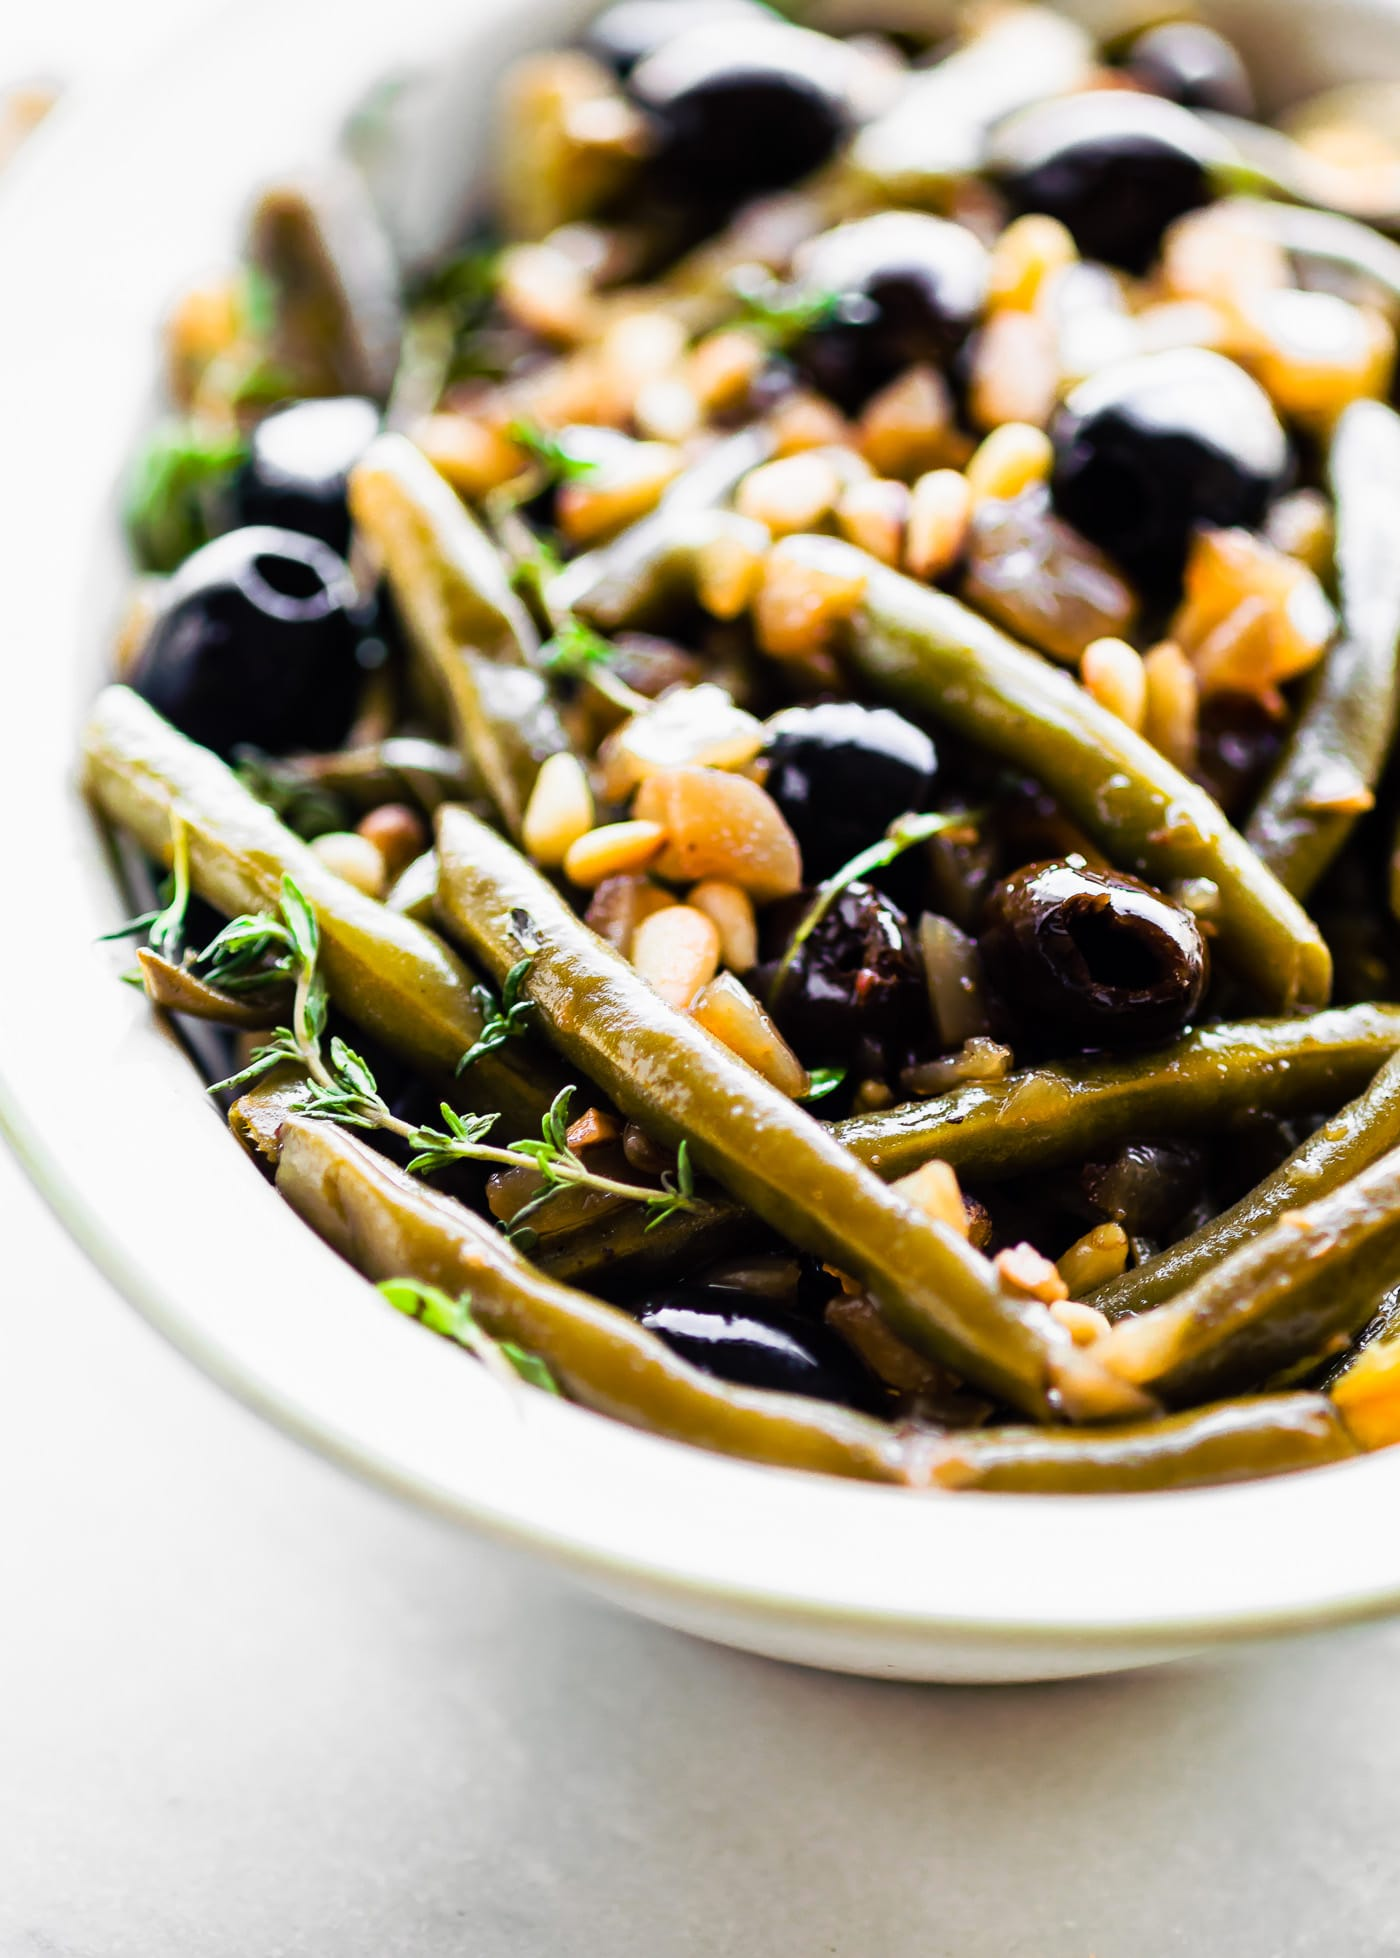 An easy slow cooked side dish to add to your table. Balsamic braised green Beans. Fresh green beans, thyme, balsamic vinegar, olive-oil, black olives, onion & toasted pine nuts. Paleo, vegan friendly.